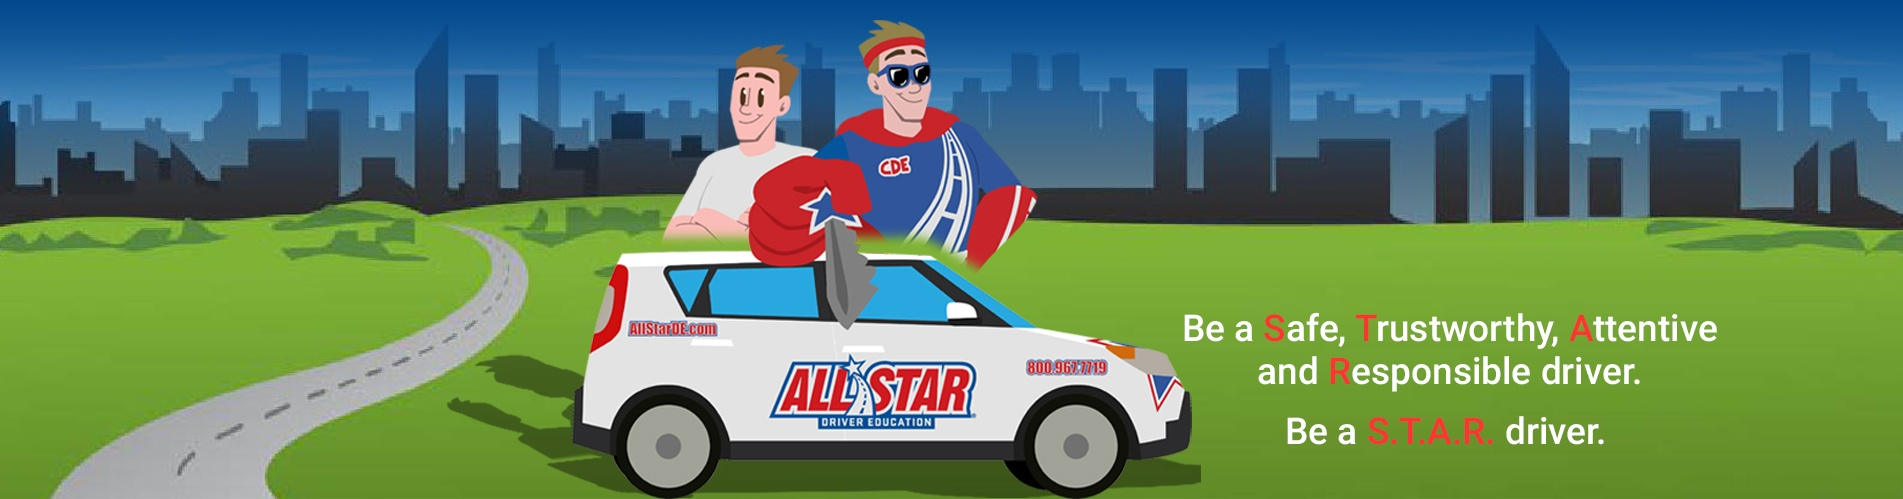 All Star Driver Education